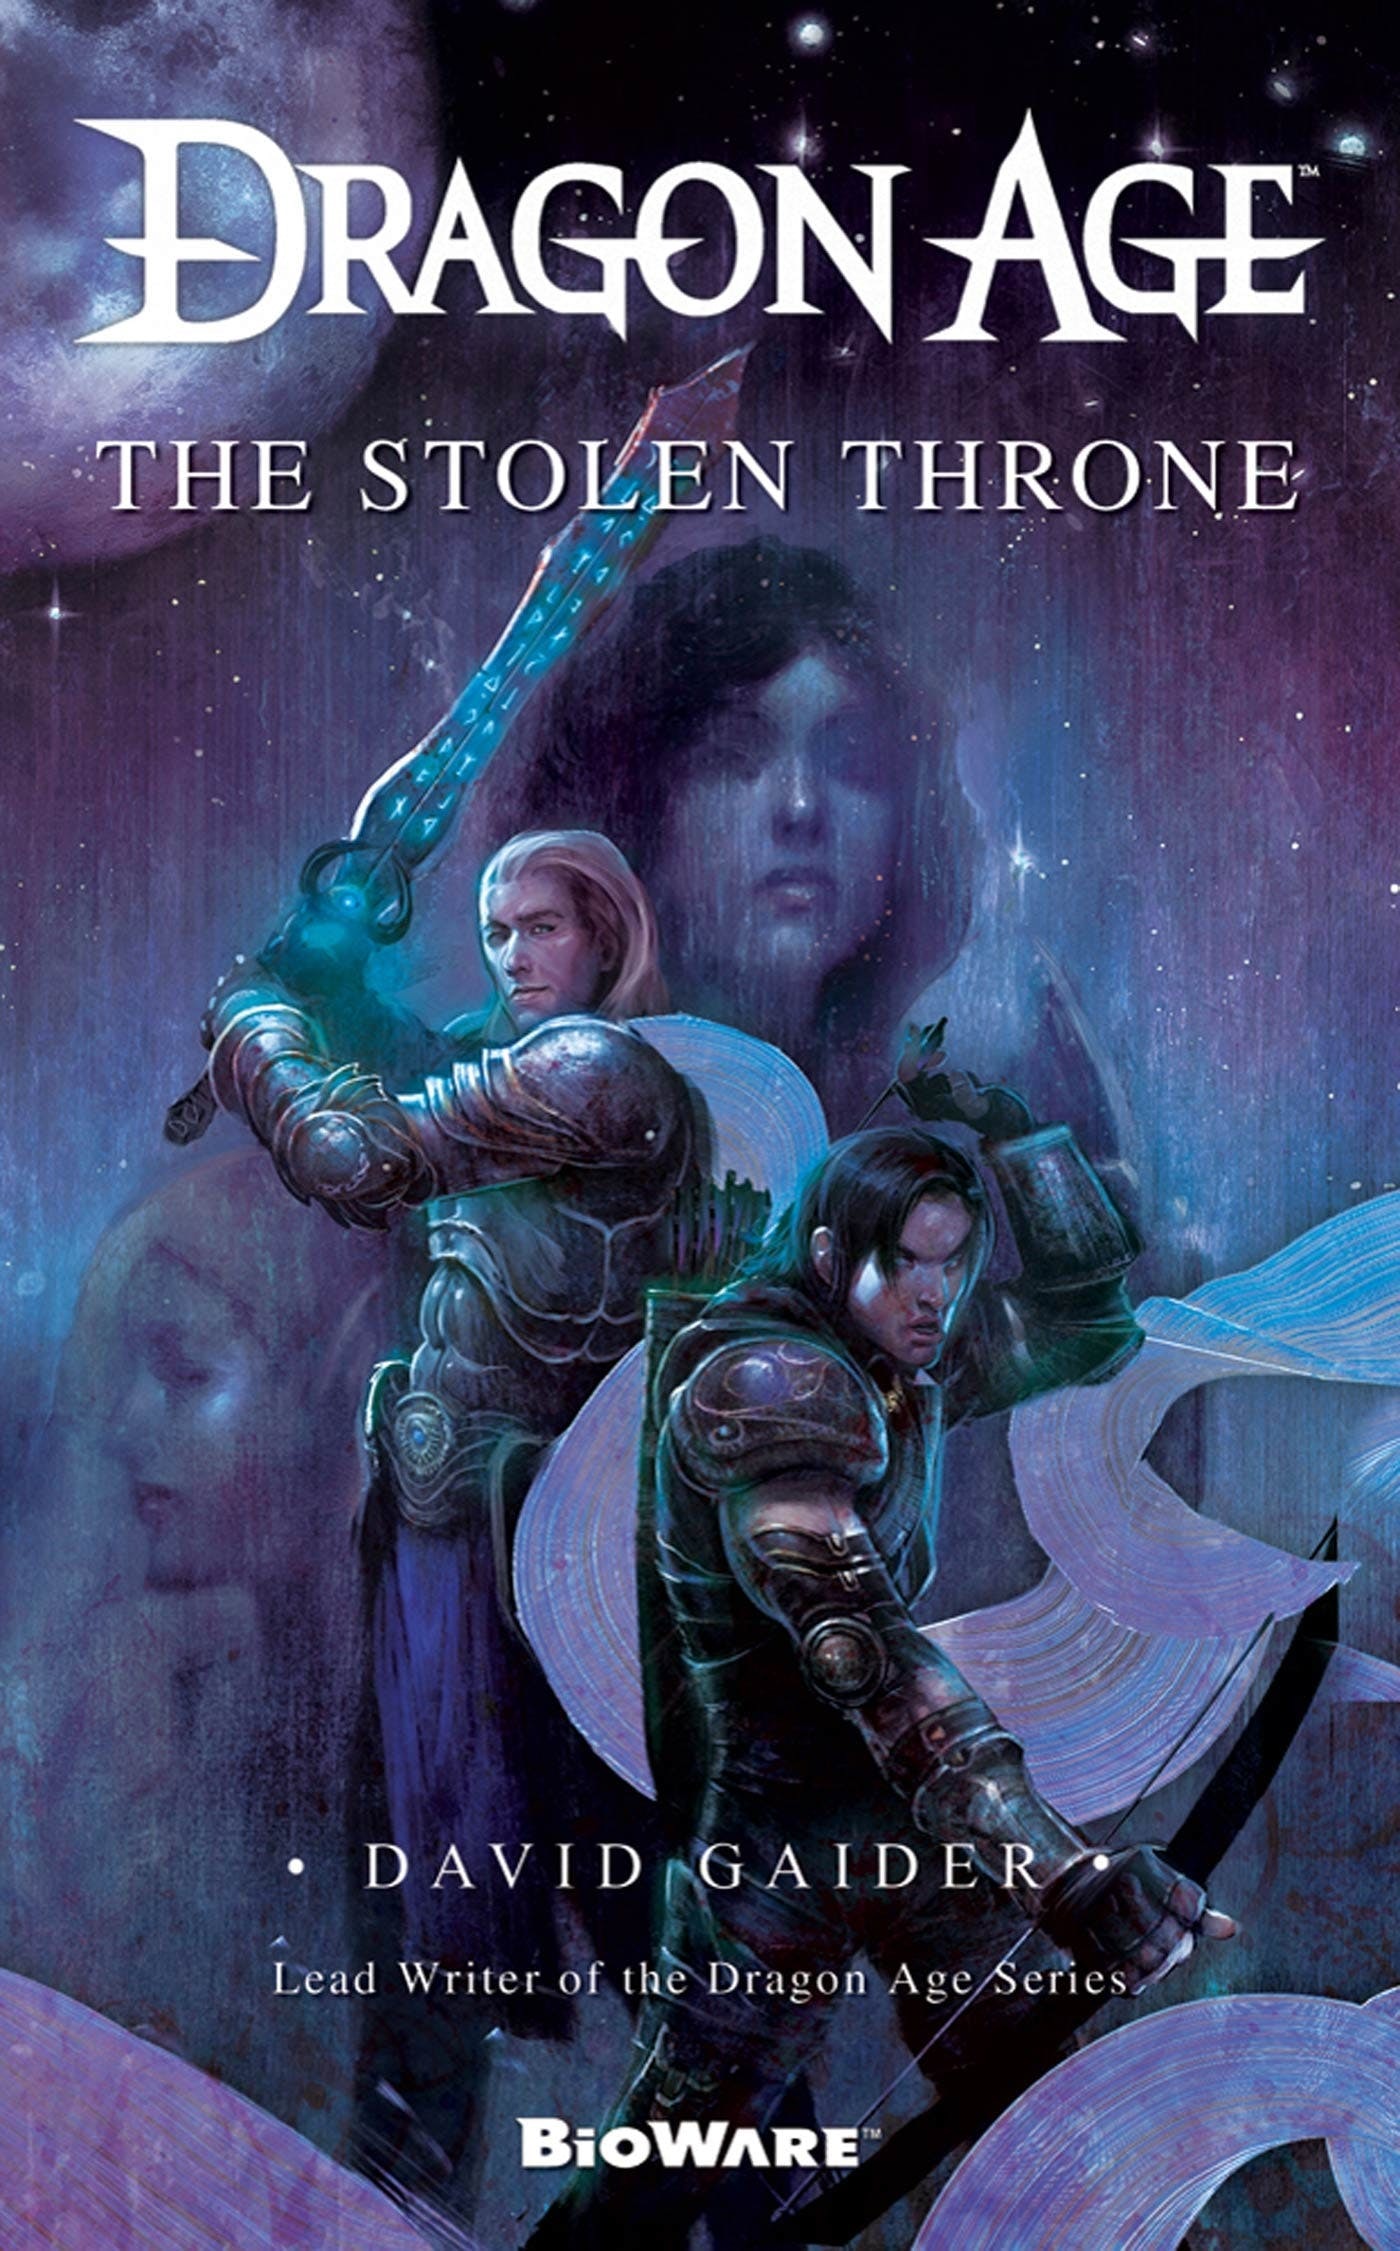 Image of Dragon Age: The Stolen Throne